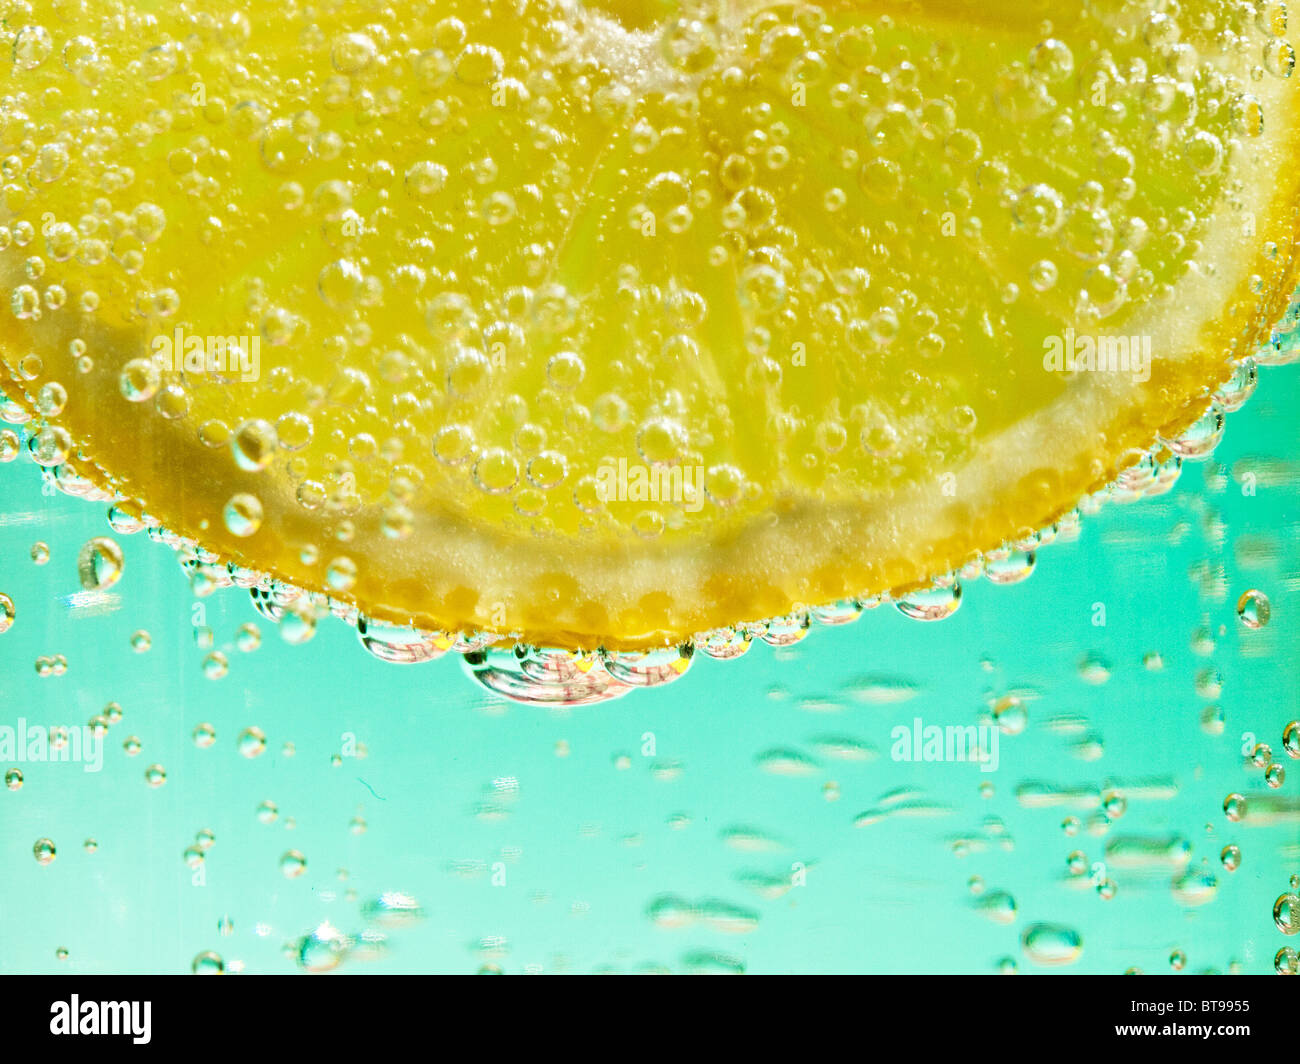 a close-up of a citron  in mineral water - Stock Image